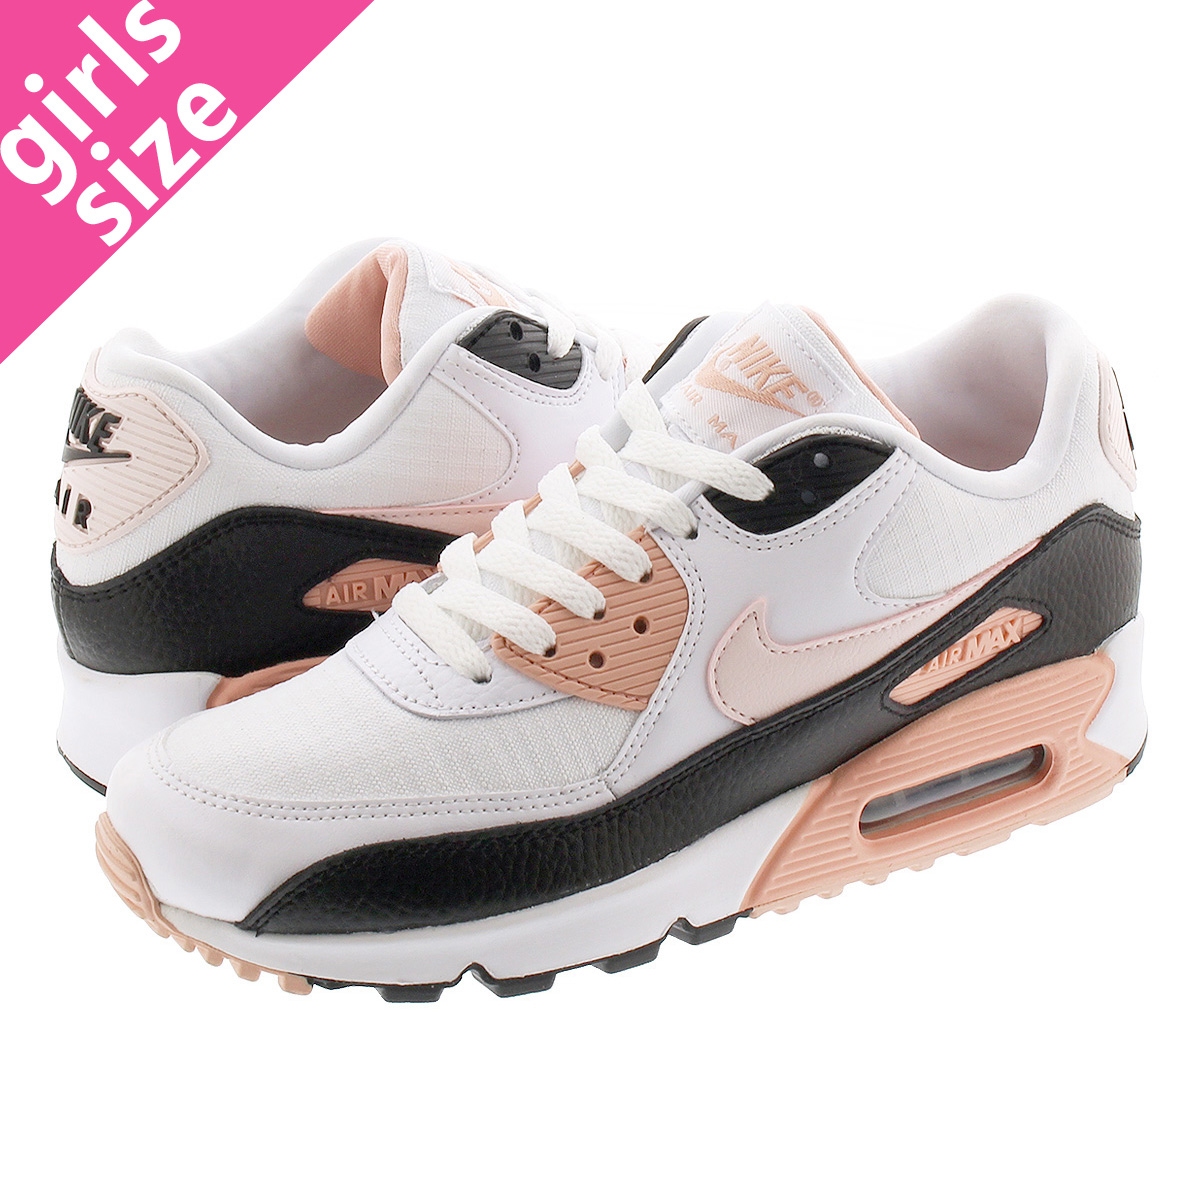 NIKE WMNS AIR MAX 90 Nike women Air Max 90 WHITELIGHT SOFT PINKBLACK 325,213 143